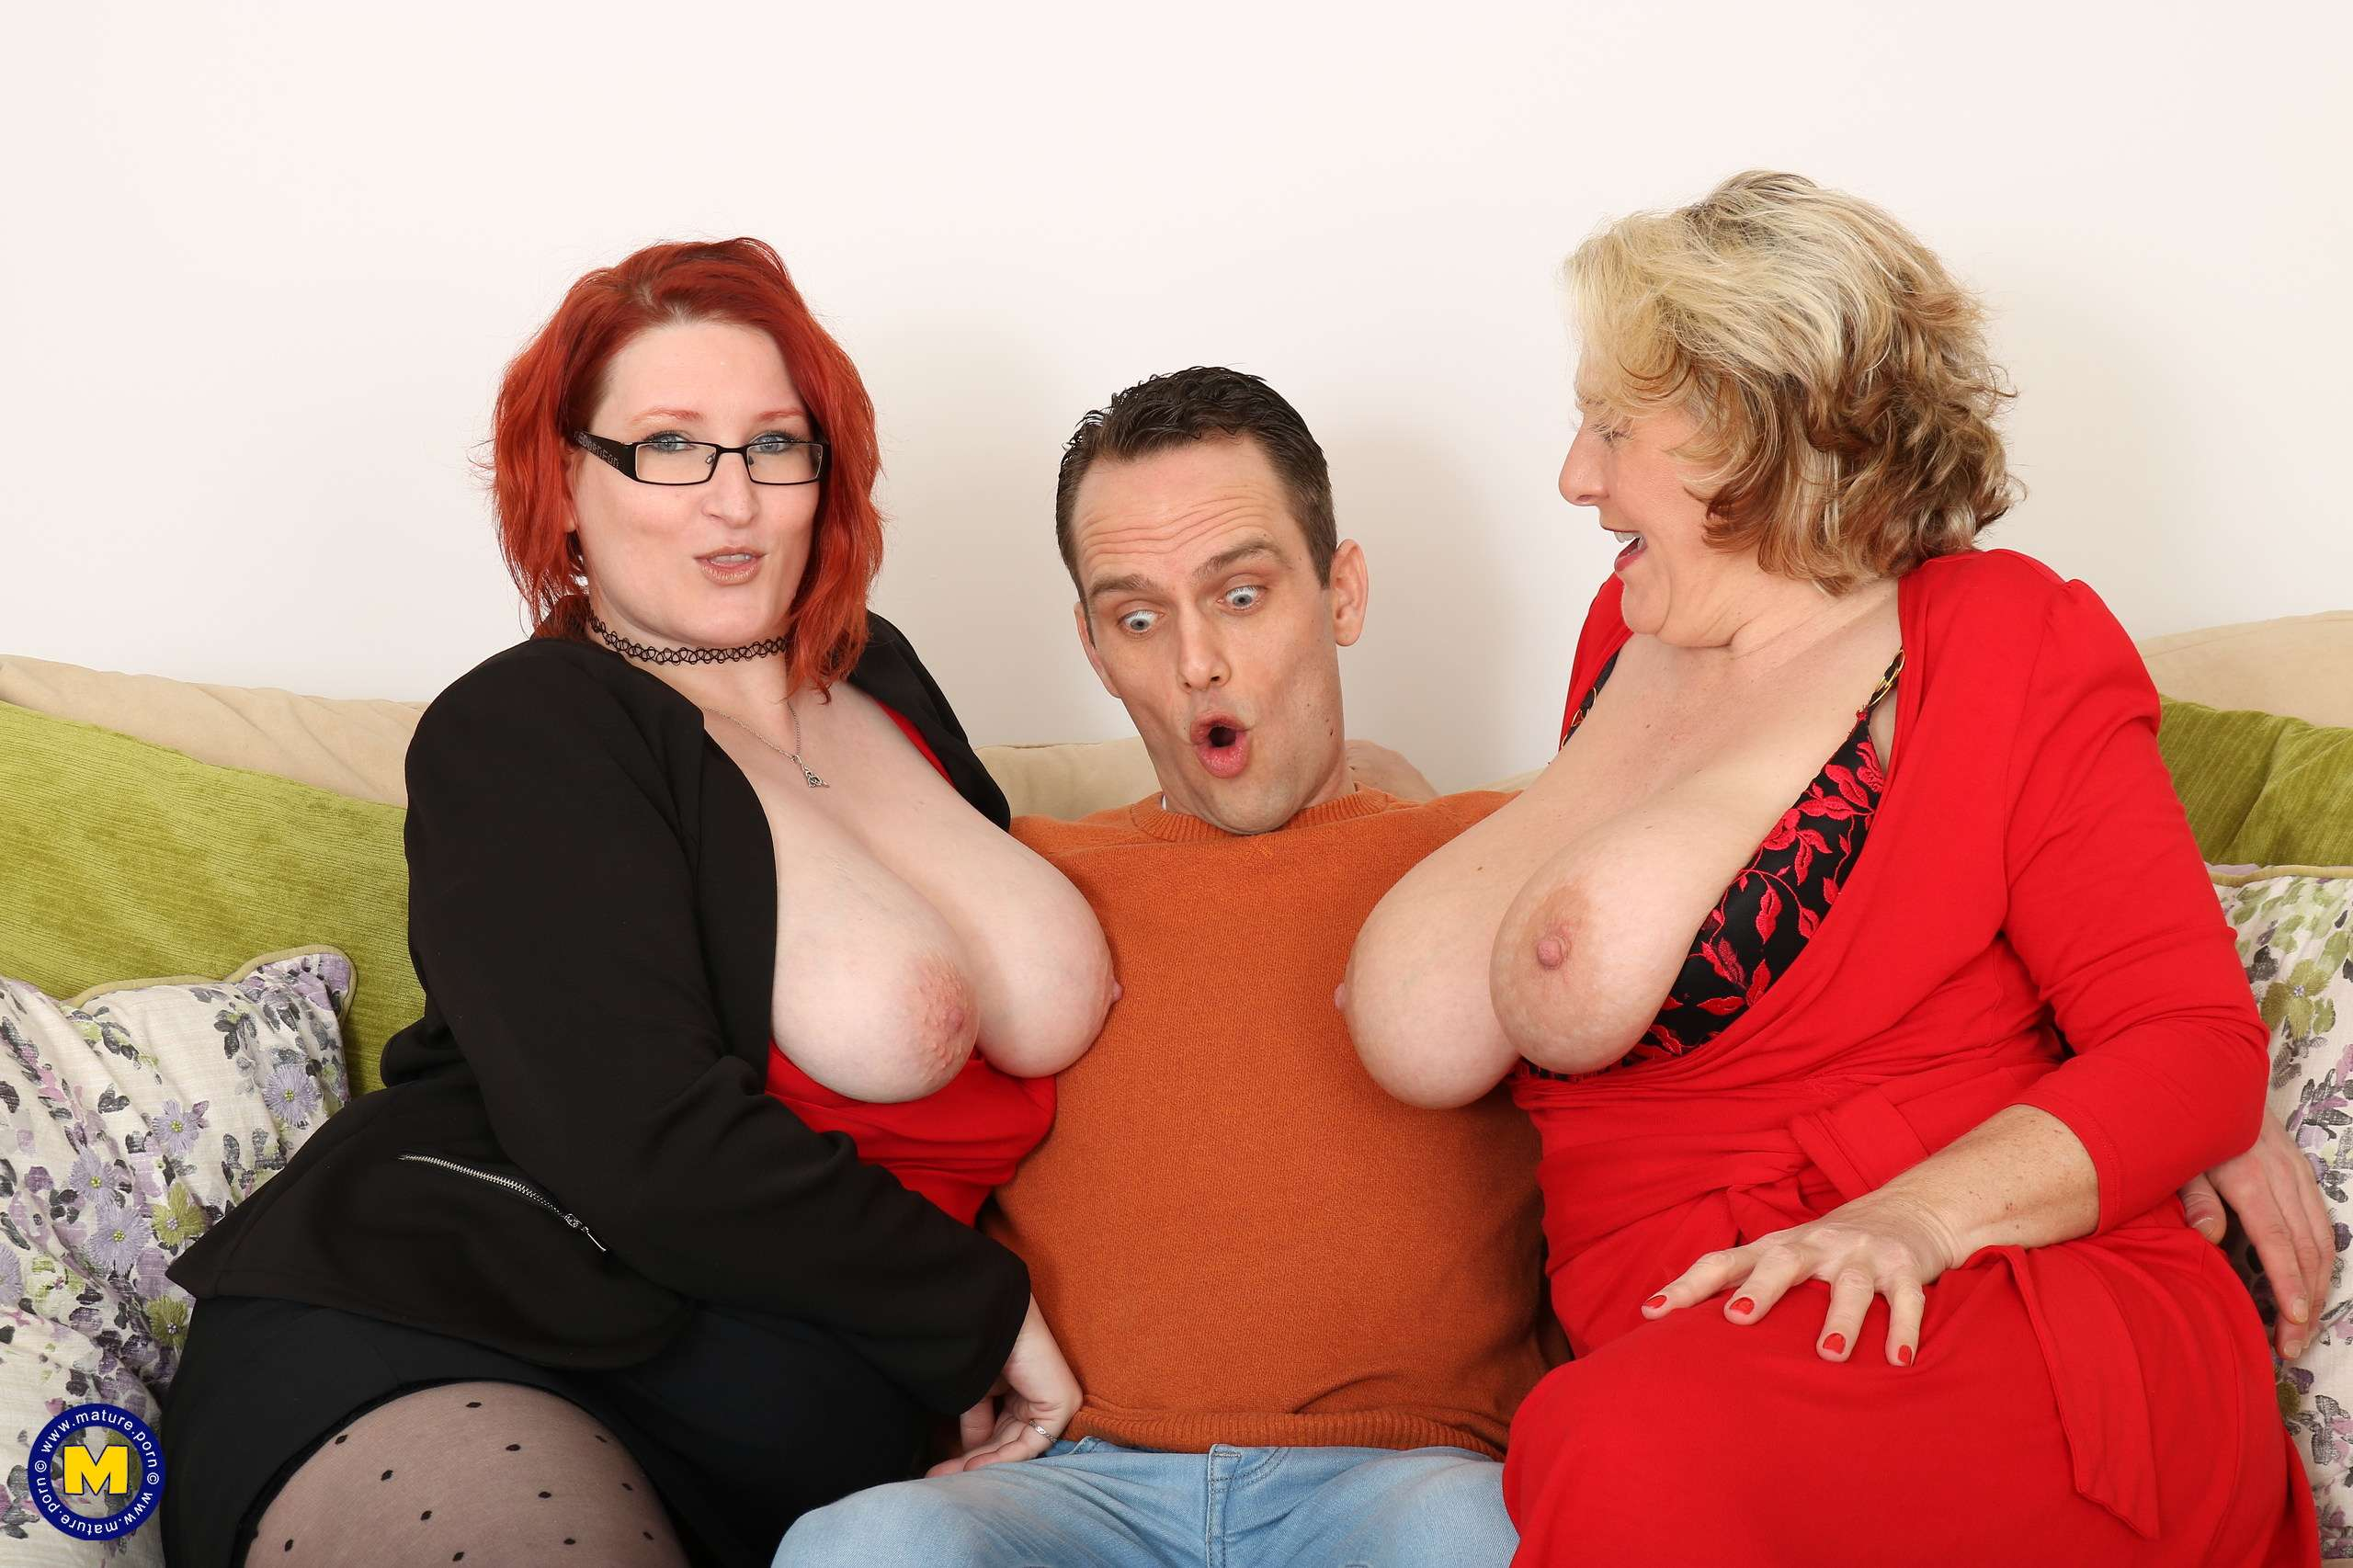 Big breasted Camilla and Rue Bourbon have a steamy threesome with one lucky guy